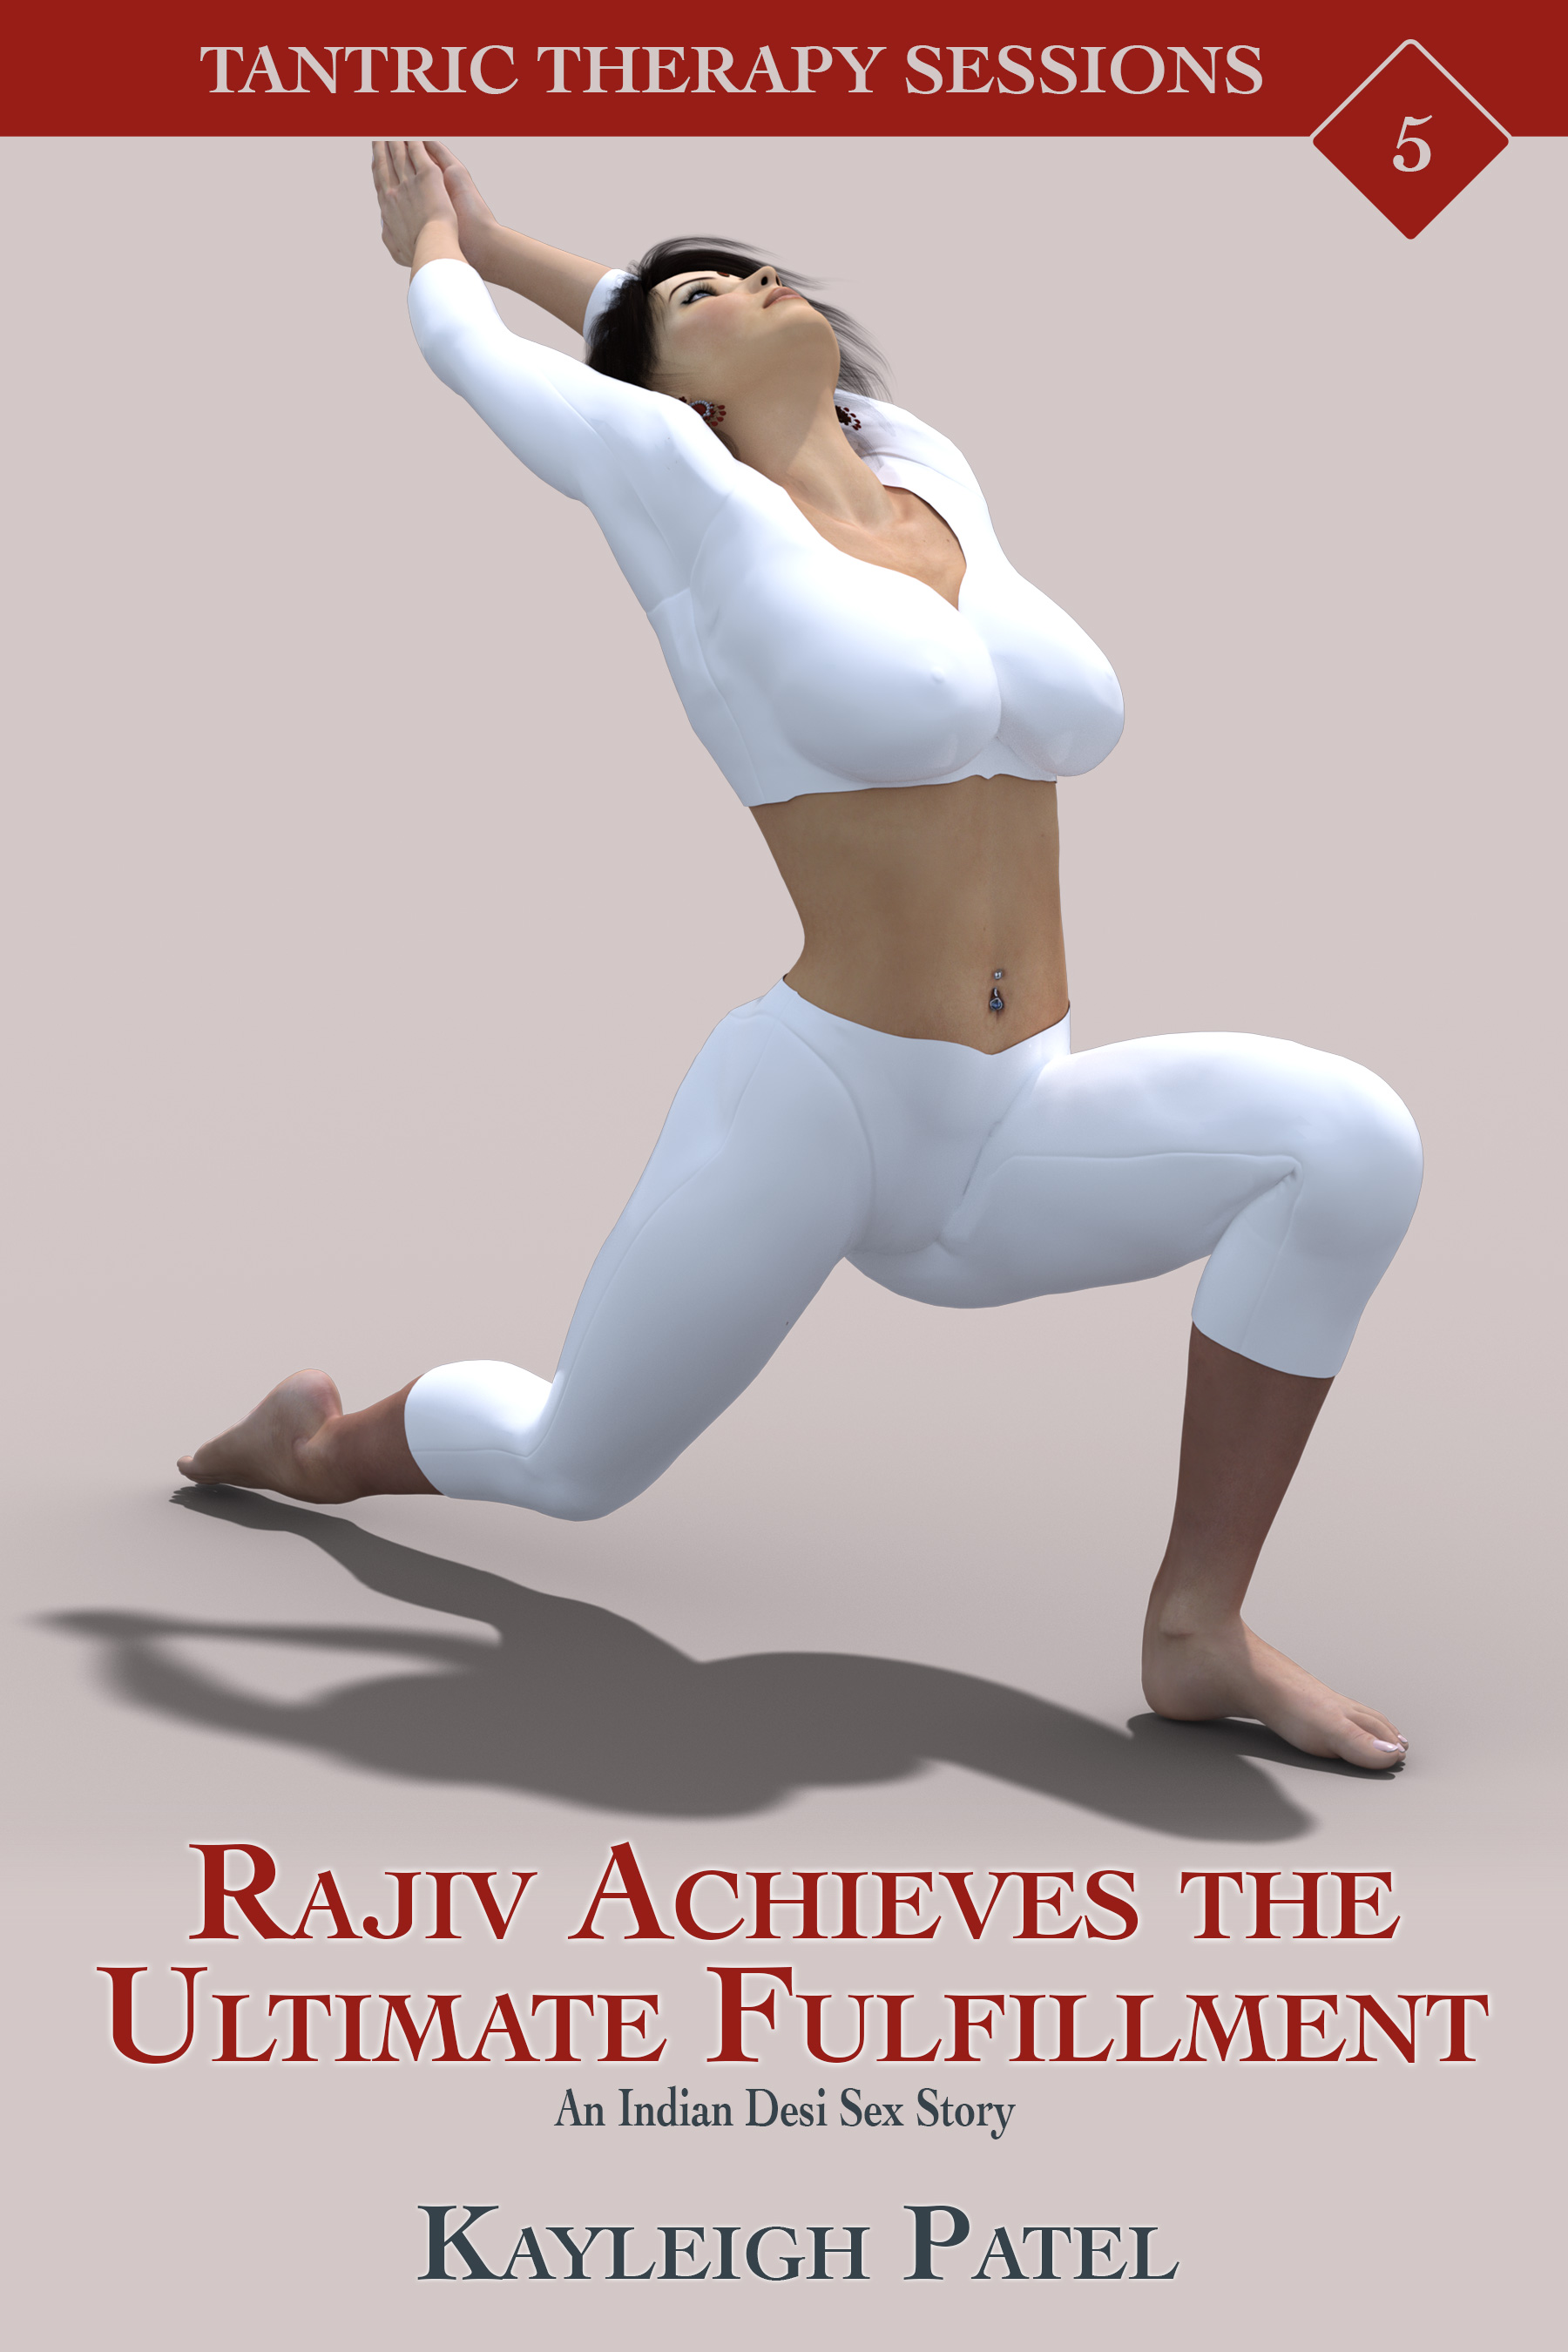 Indian Desisex Beautiful smashwords – rajiv achieves the ultimate fulfillment: an indian